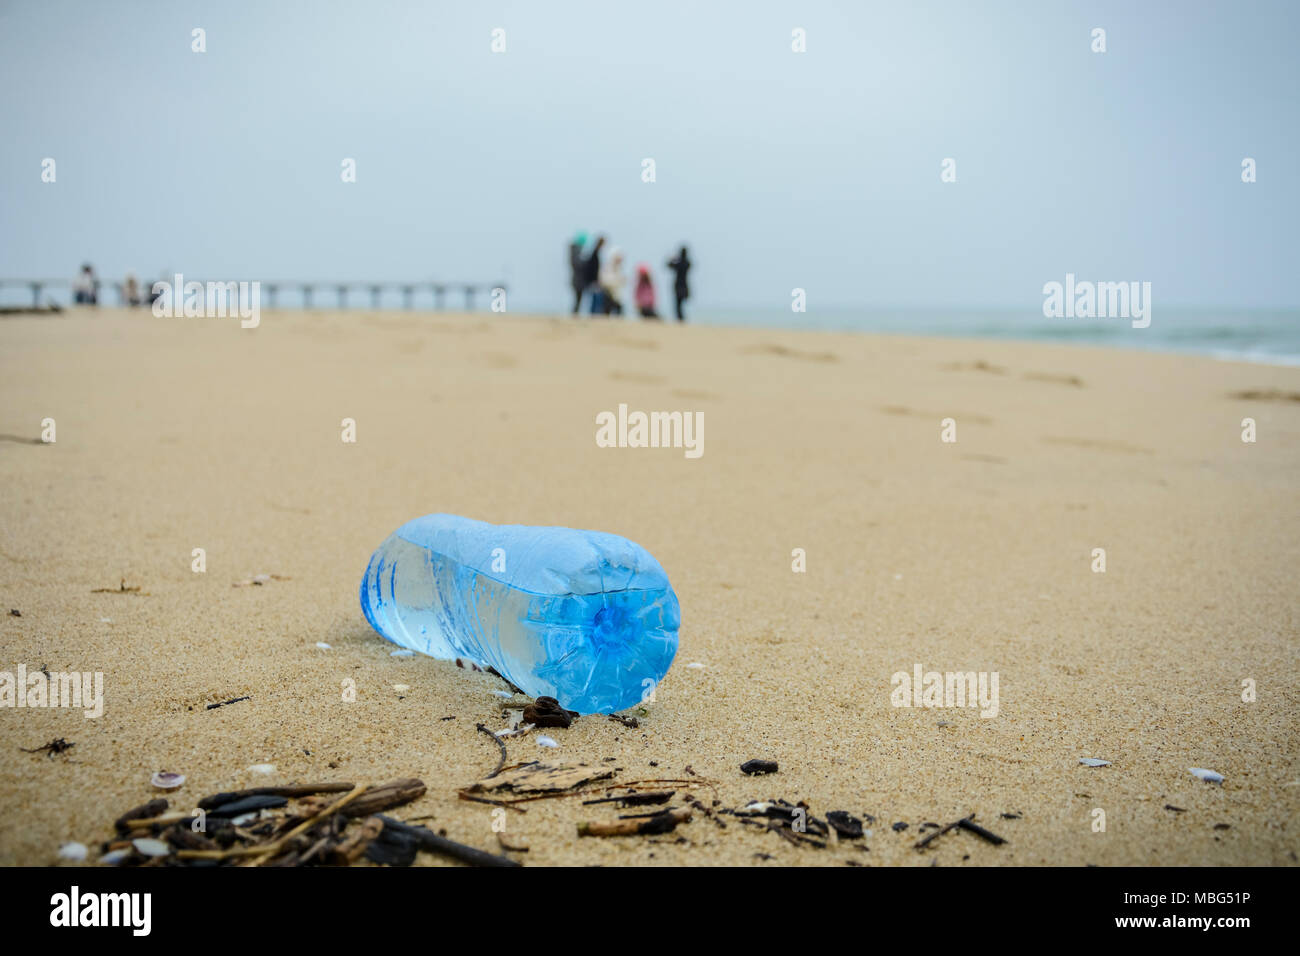 dirty plastic bottle dropped on the beach - Stock Image